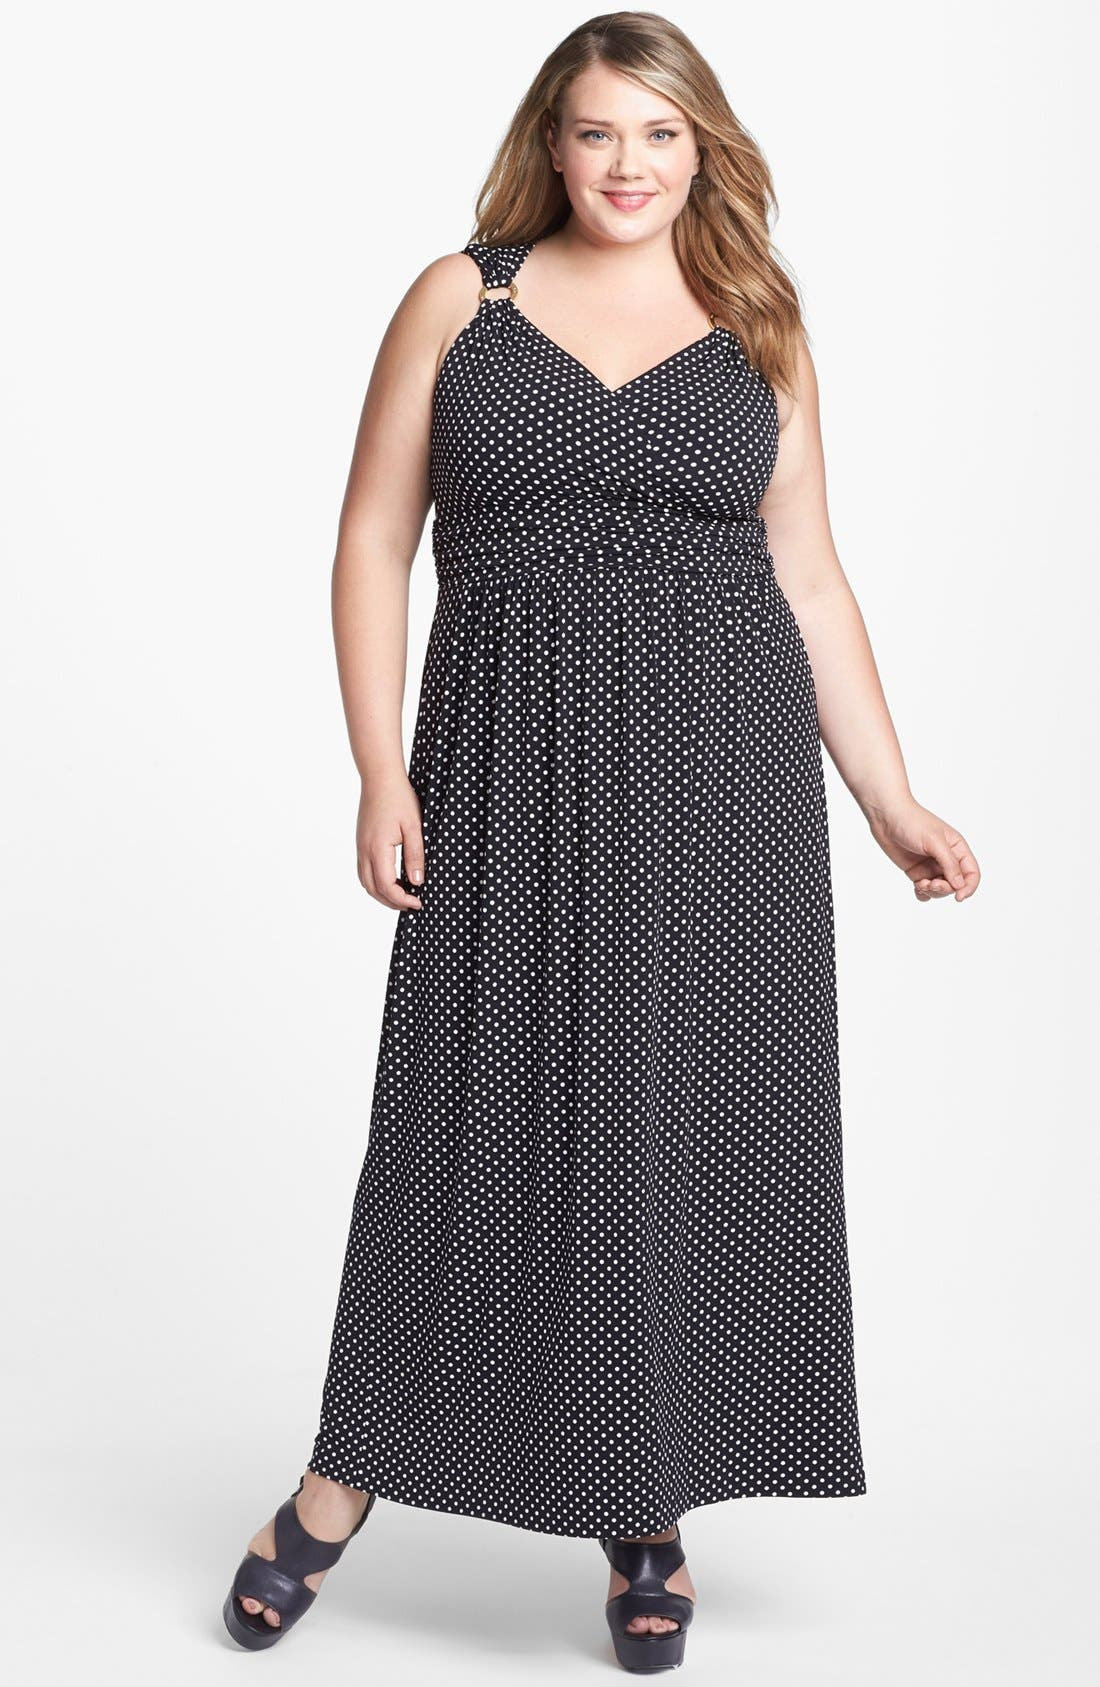 Main Image - Vince Camuto Polka Dot Maxi Dress (Plus Size) (Online Only)